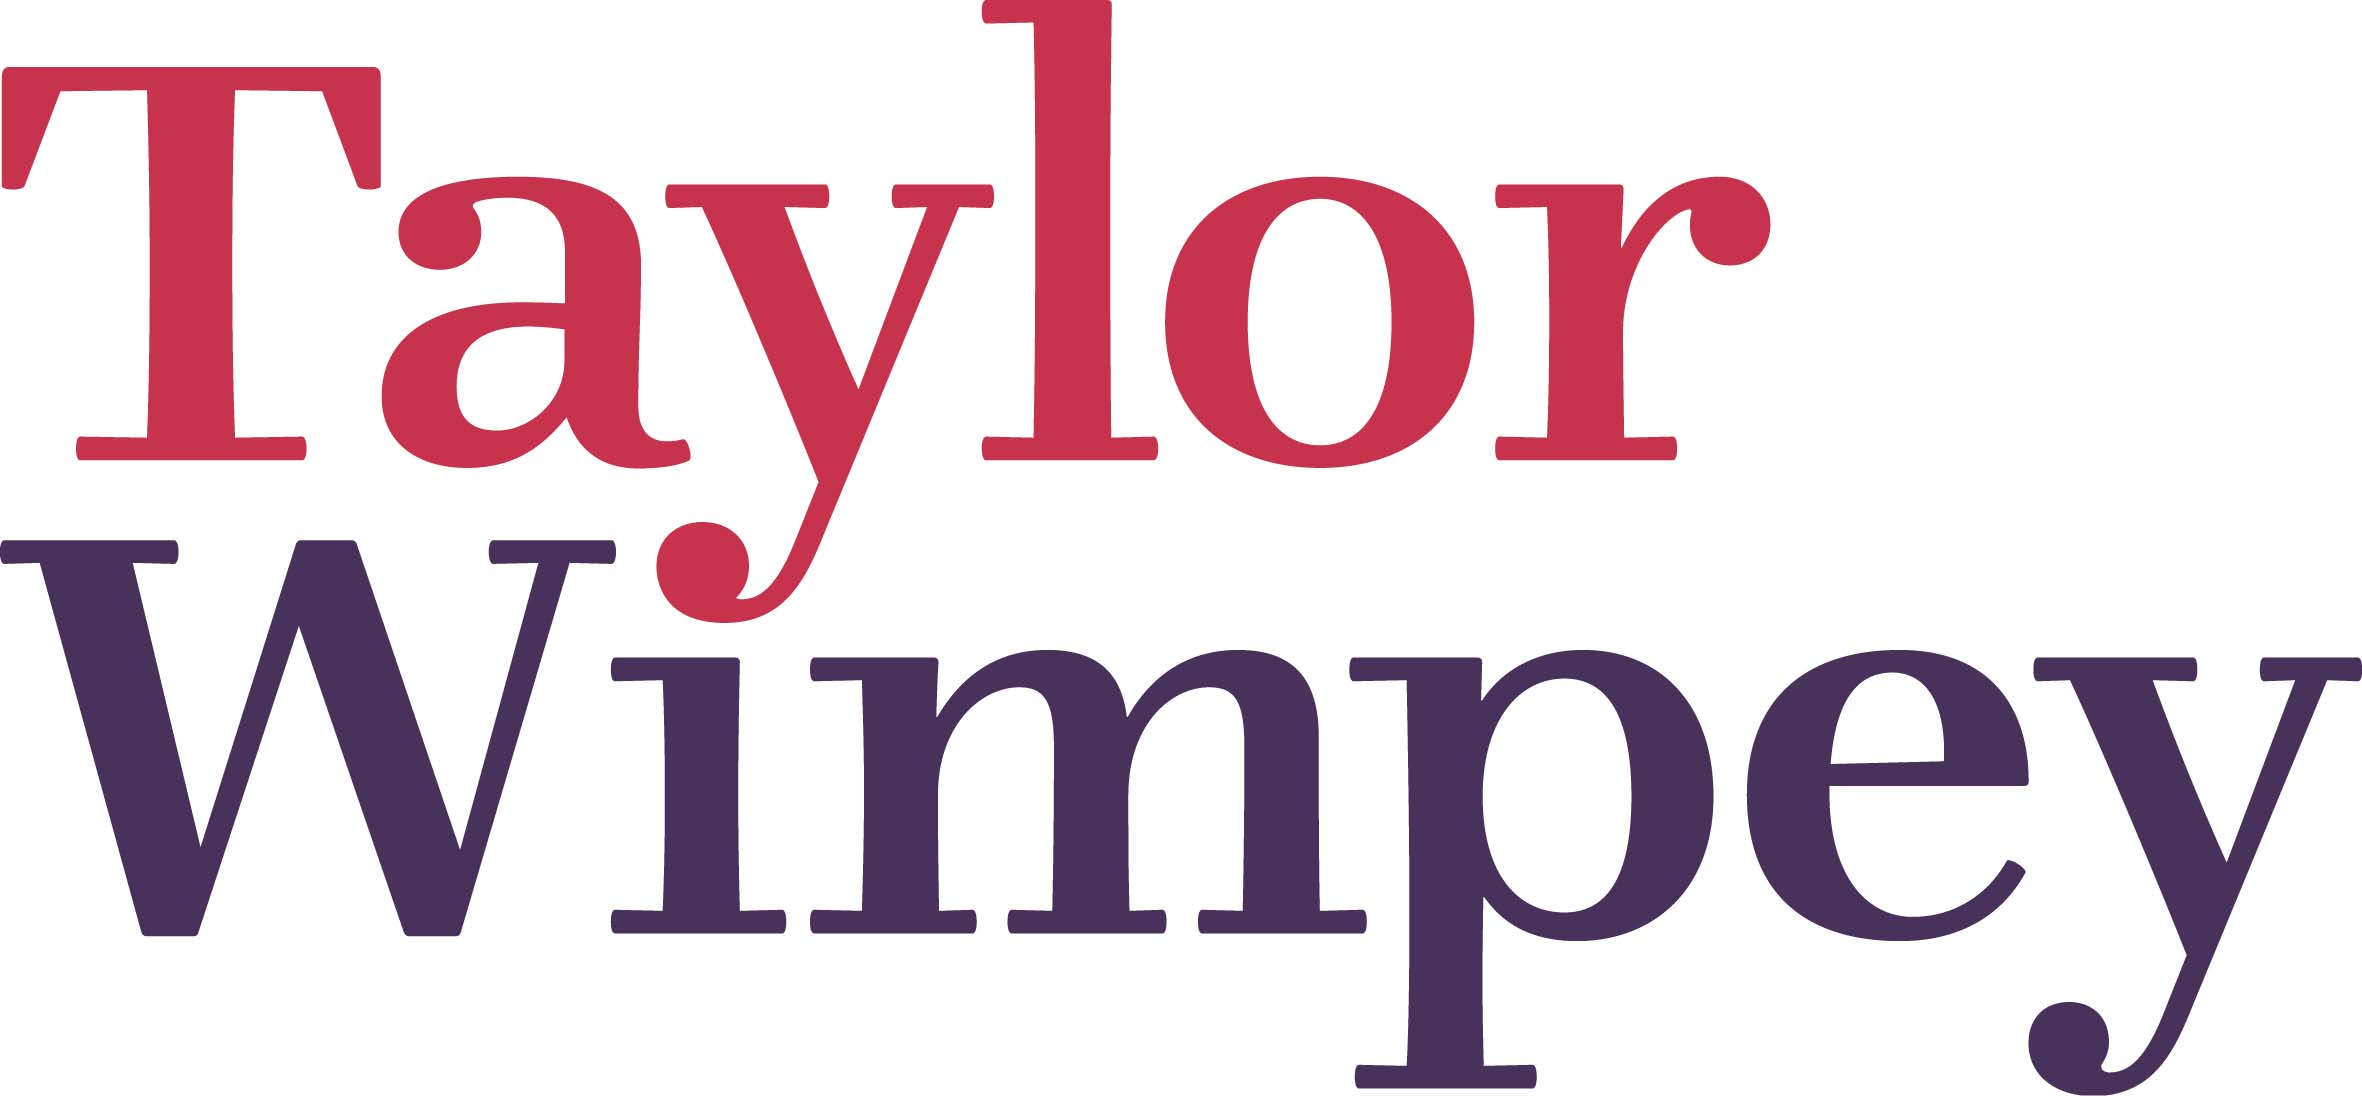 Taylor Wimpey - Station View Project